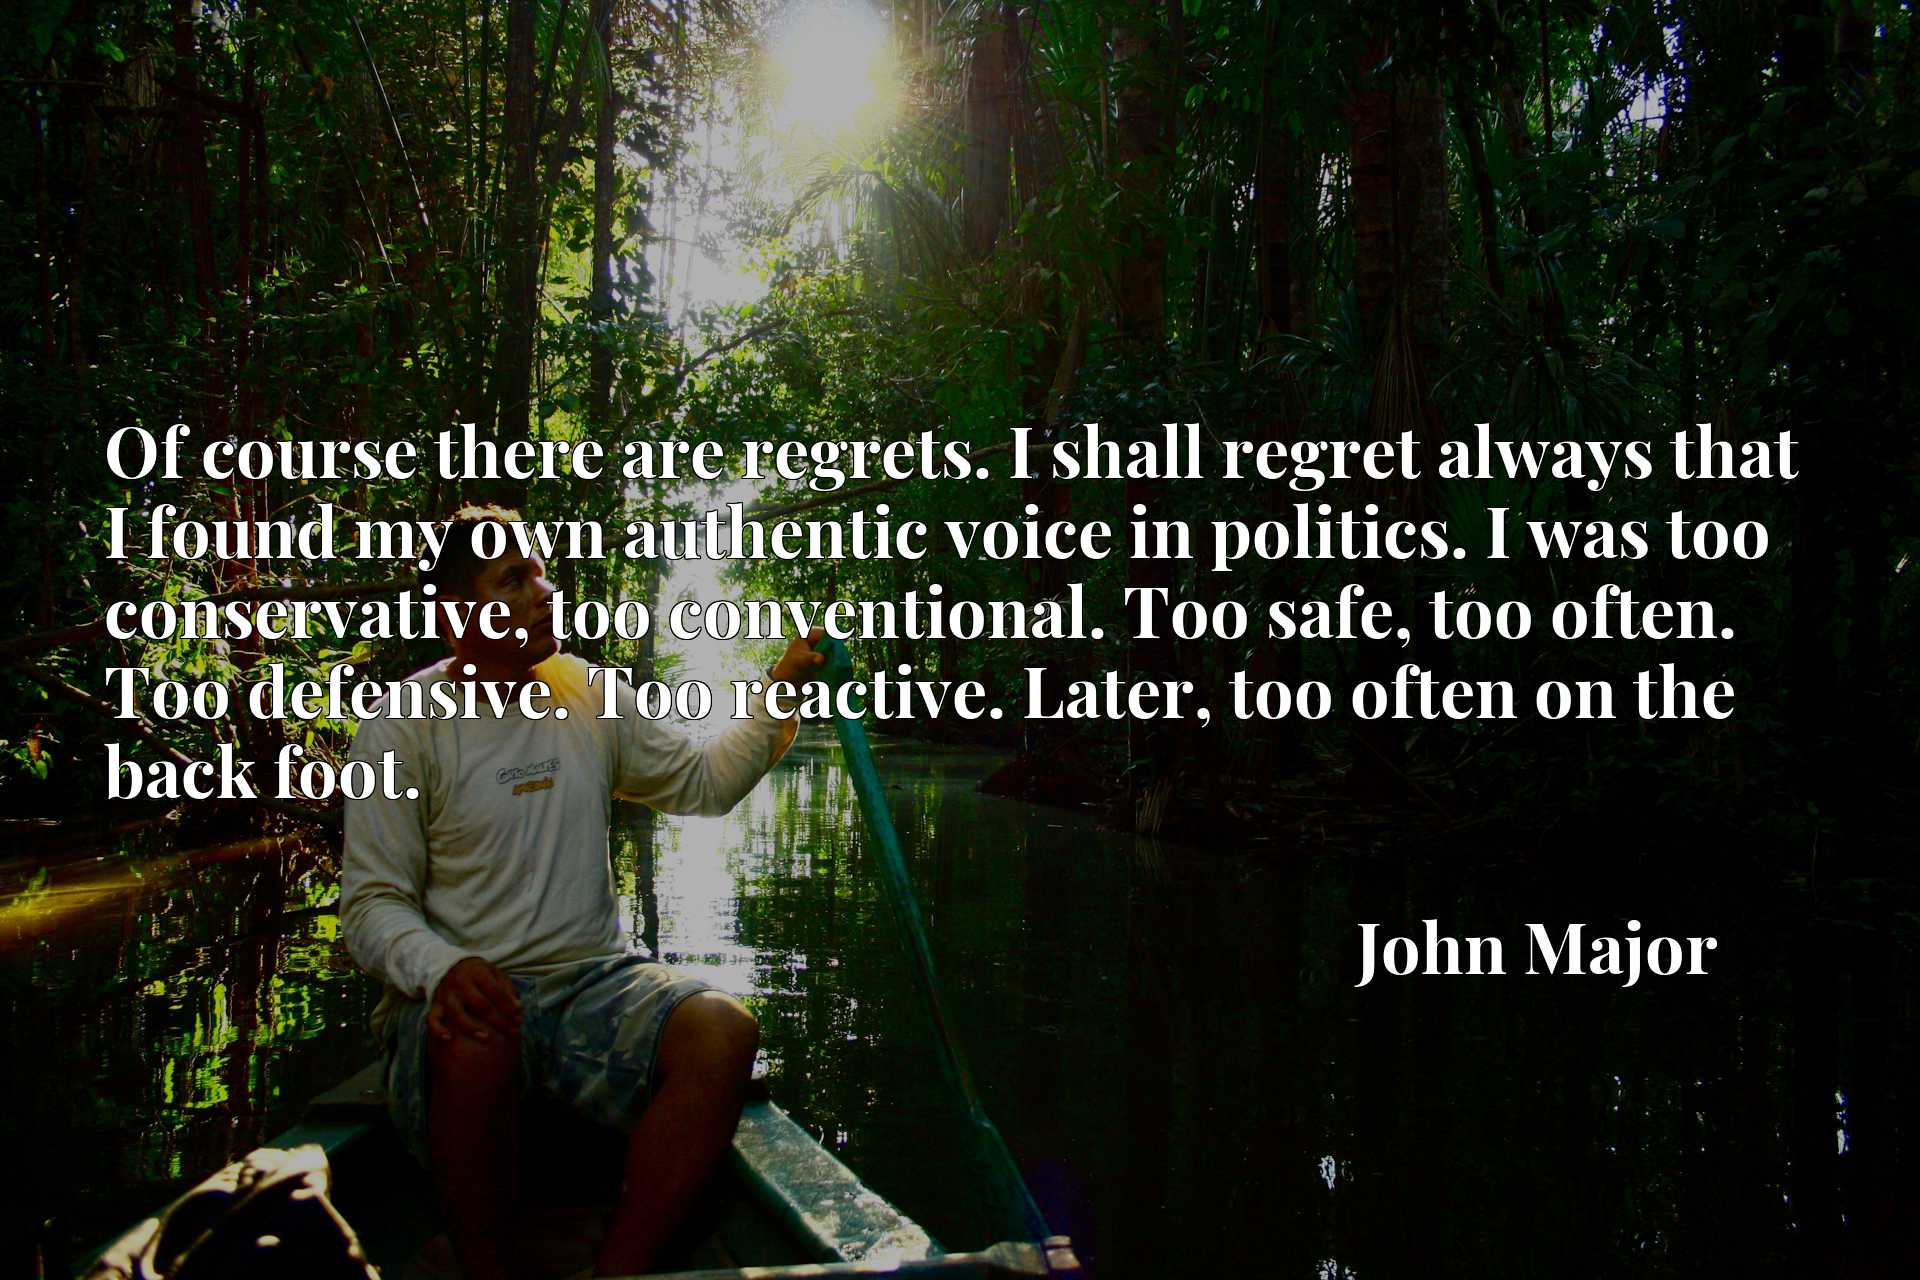 Of course there are regrets. I shall regret always that I found my own authentic voice in politics. I was too conservative, too conventional. Too safe, too often. Too defensive. Too reactive. Later, too often on the back foot.